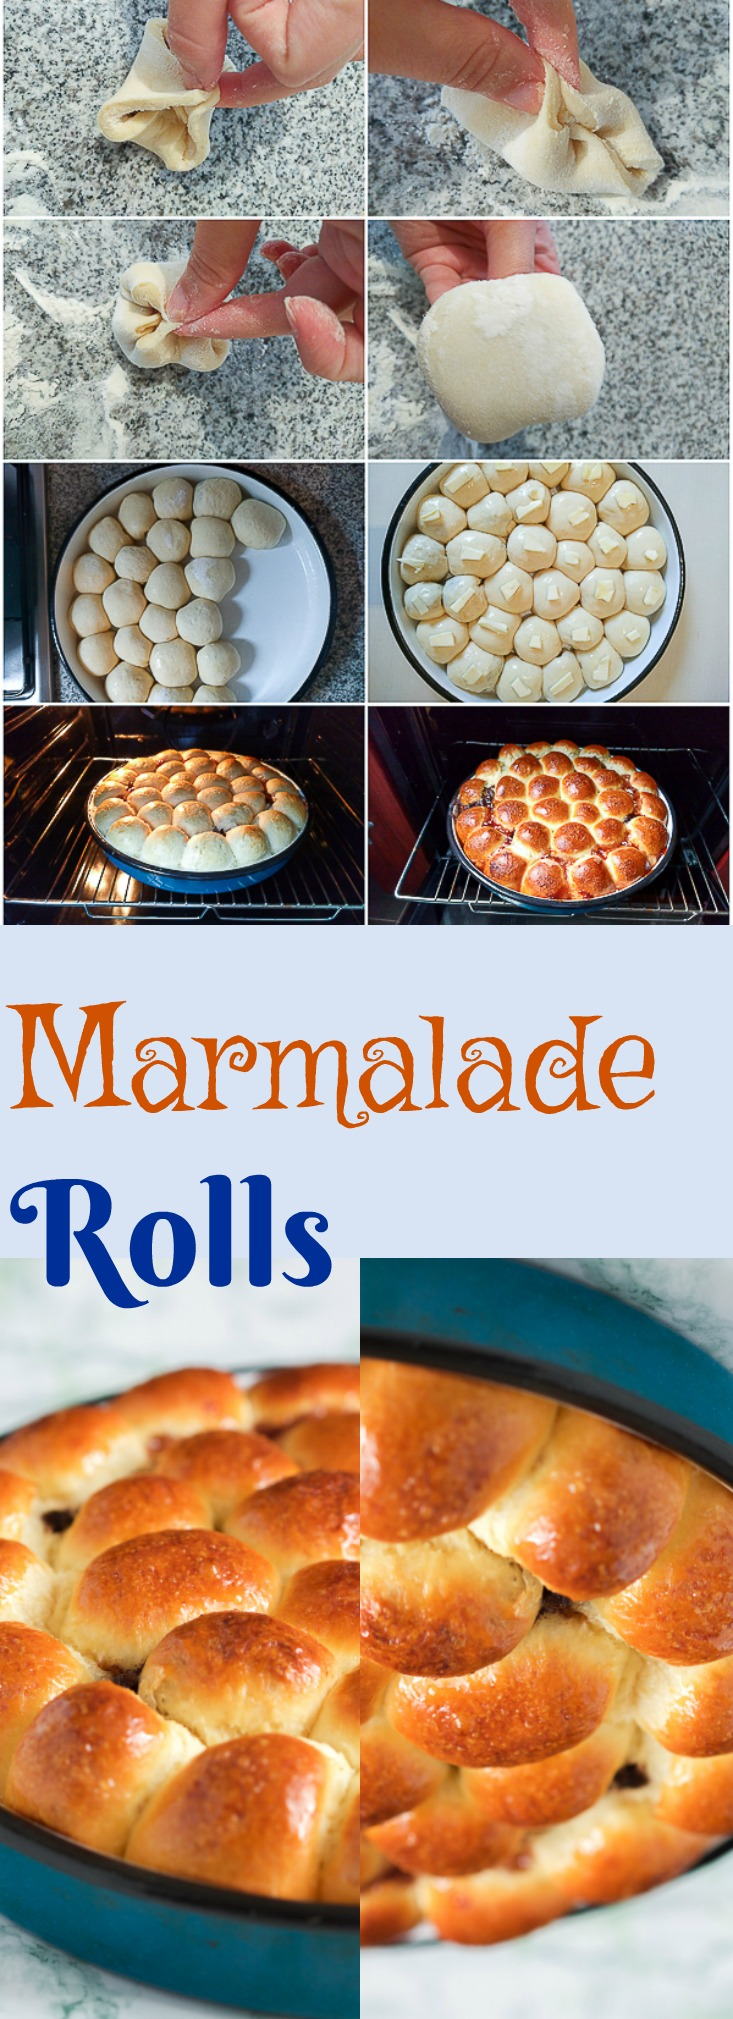 Marmalade rolls: just the right thing for a perfectly sweet and juicy end of the day.